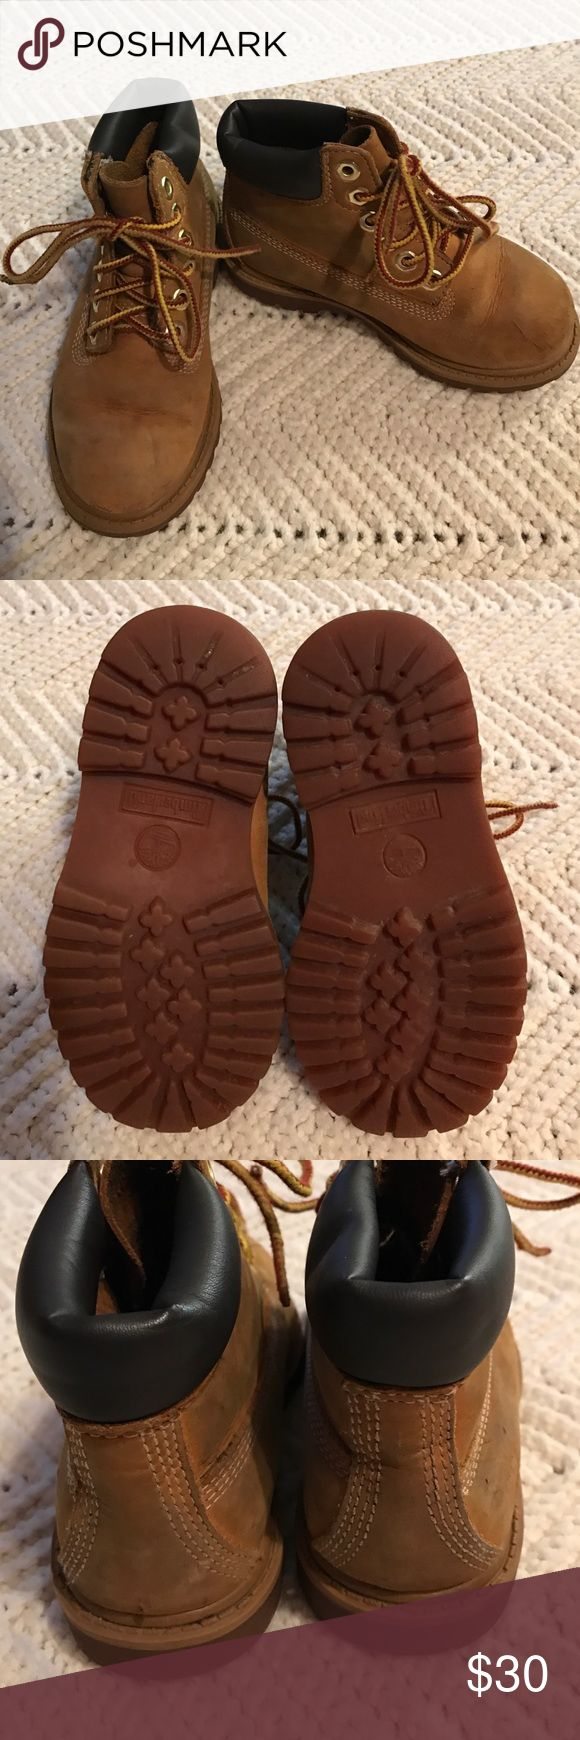 timberland boots for toddler boys size 9